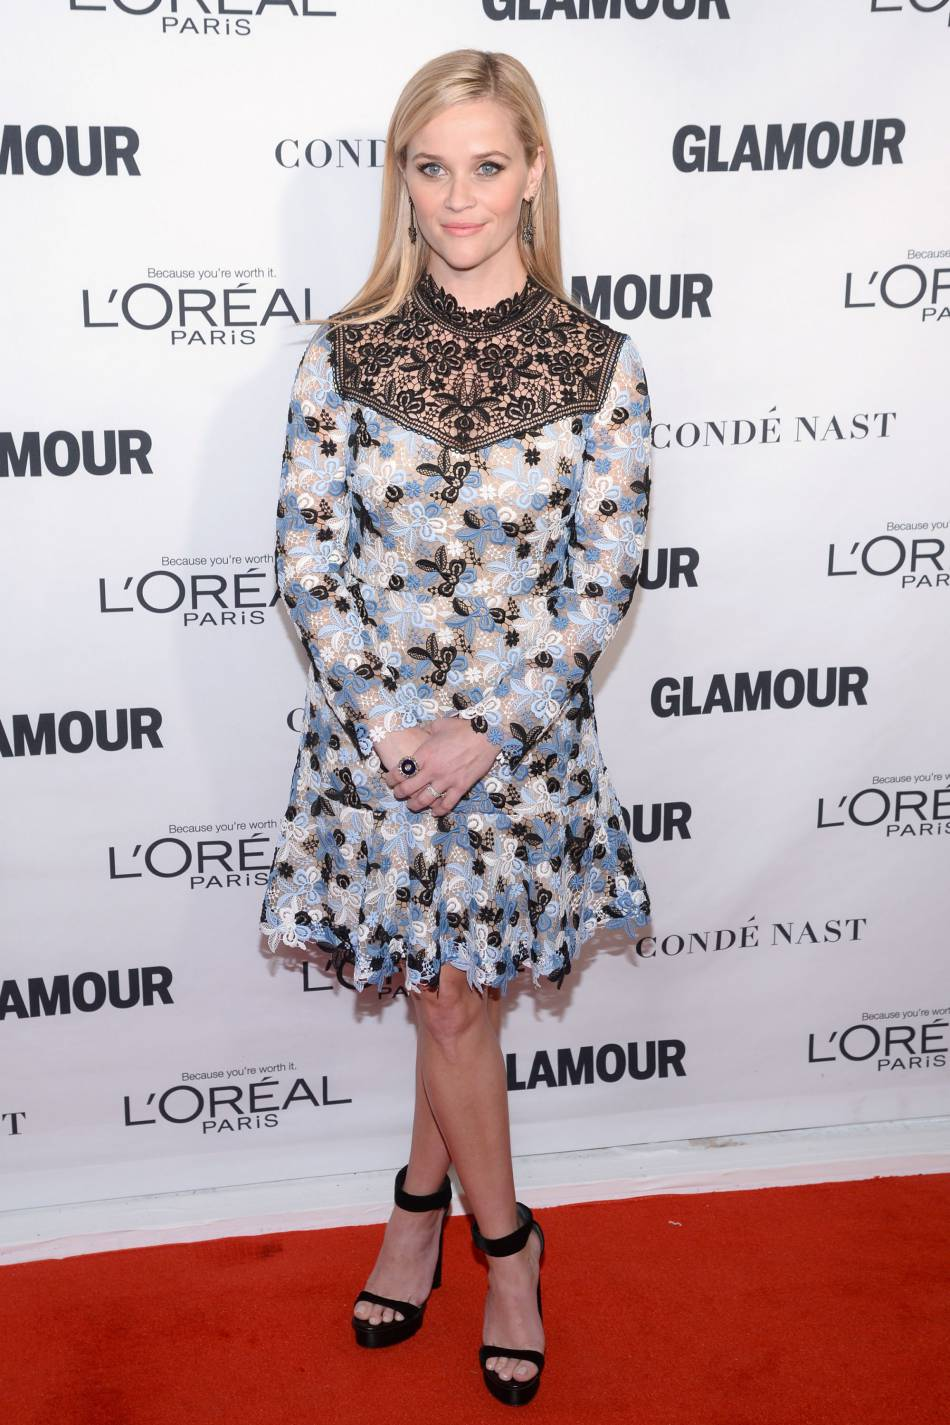 Reese Witherspoon dans une robe Erdem RE16 aux Glamour Awards le 9 novembre 2015 à New York.